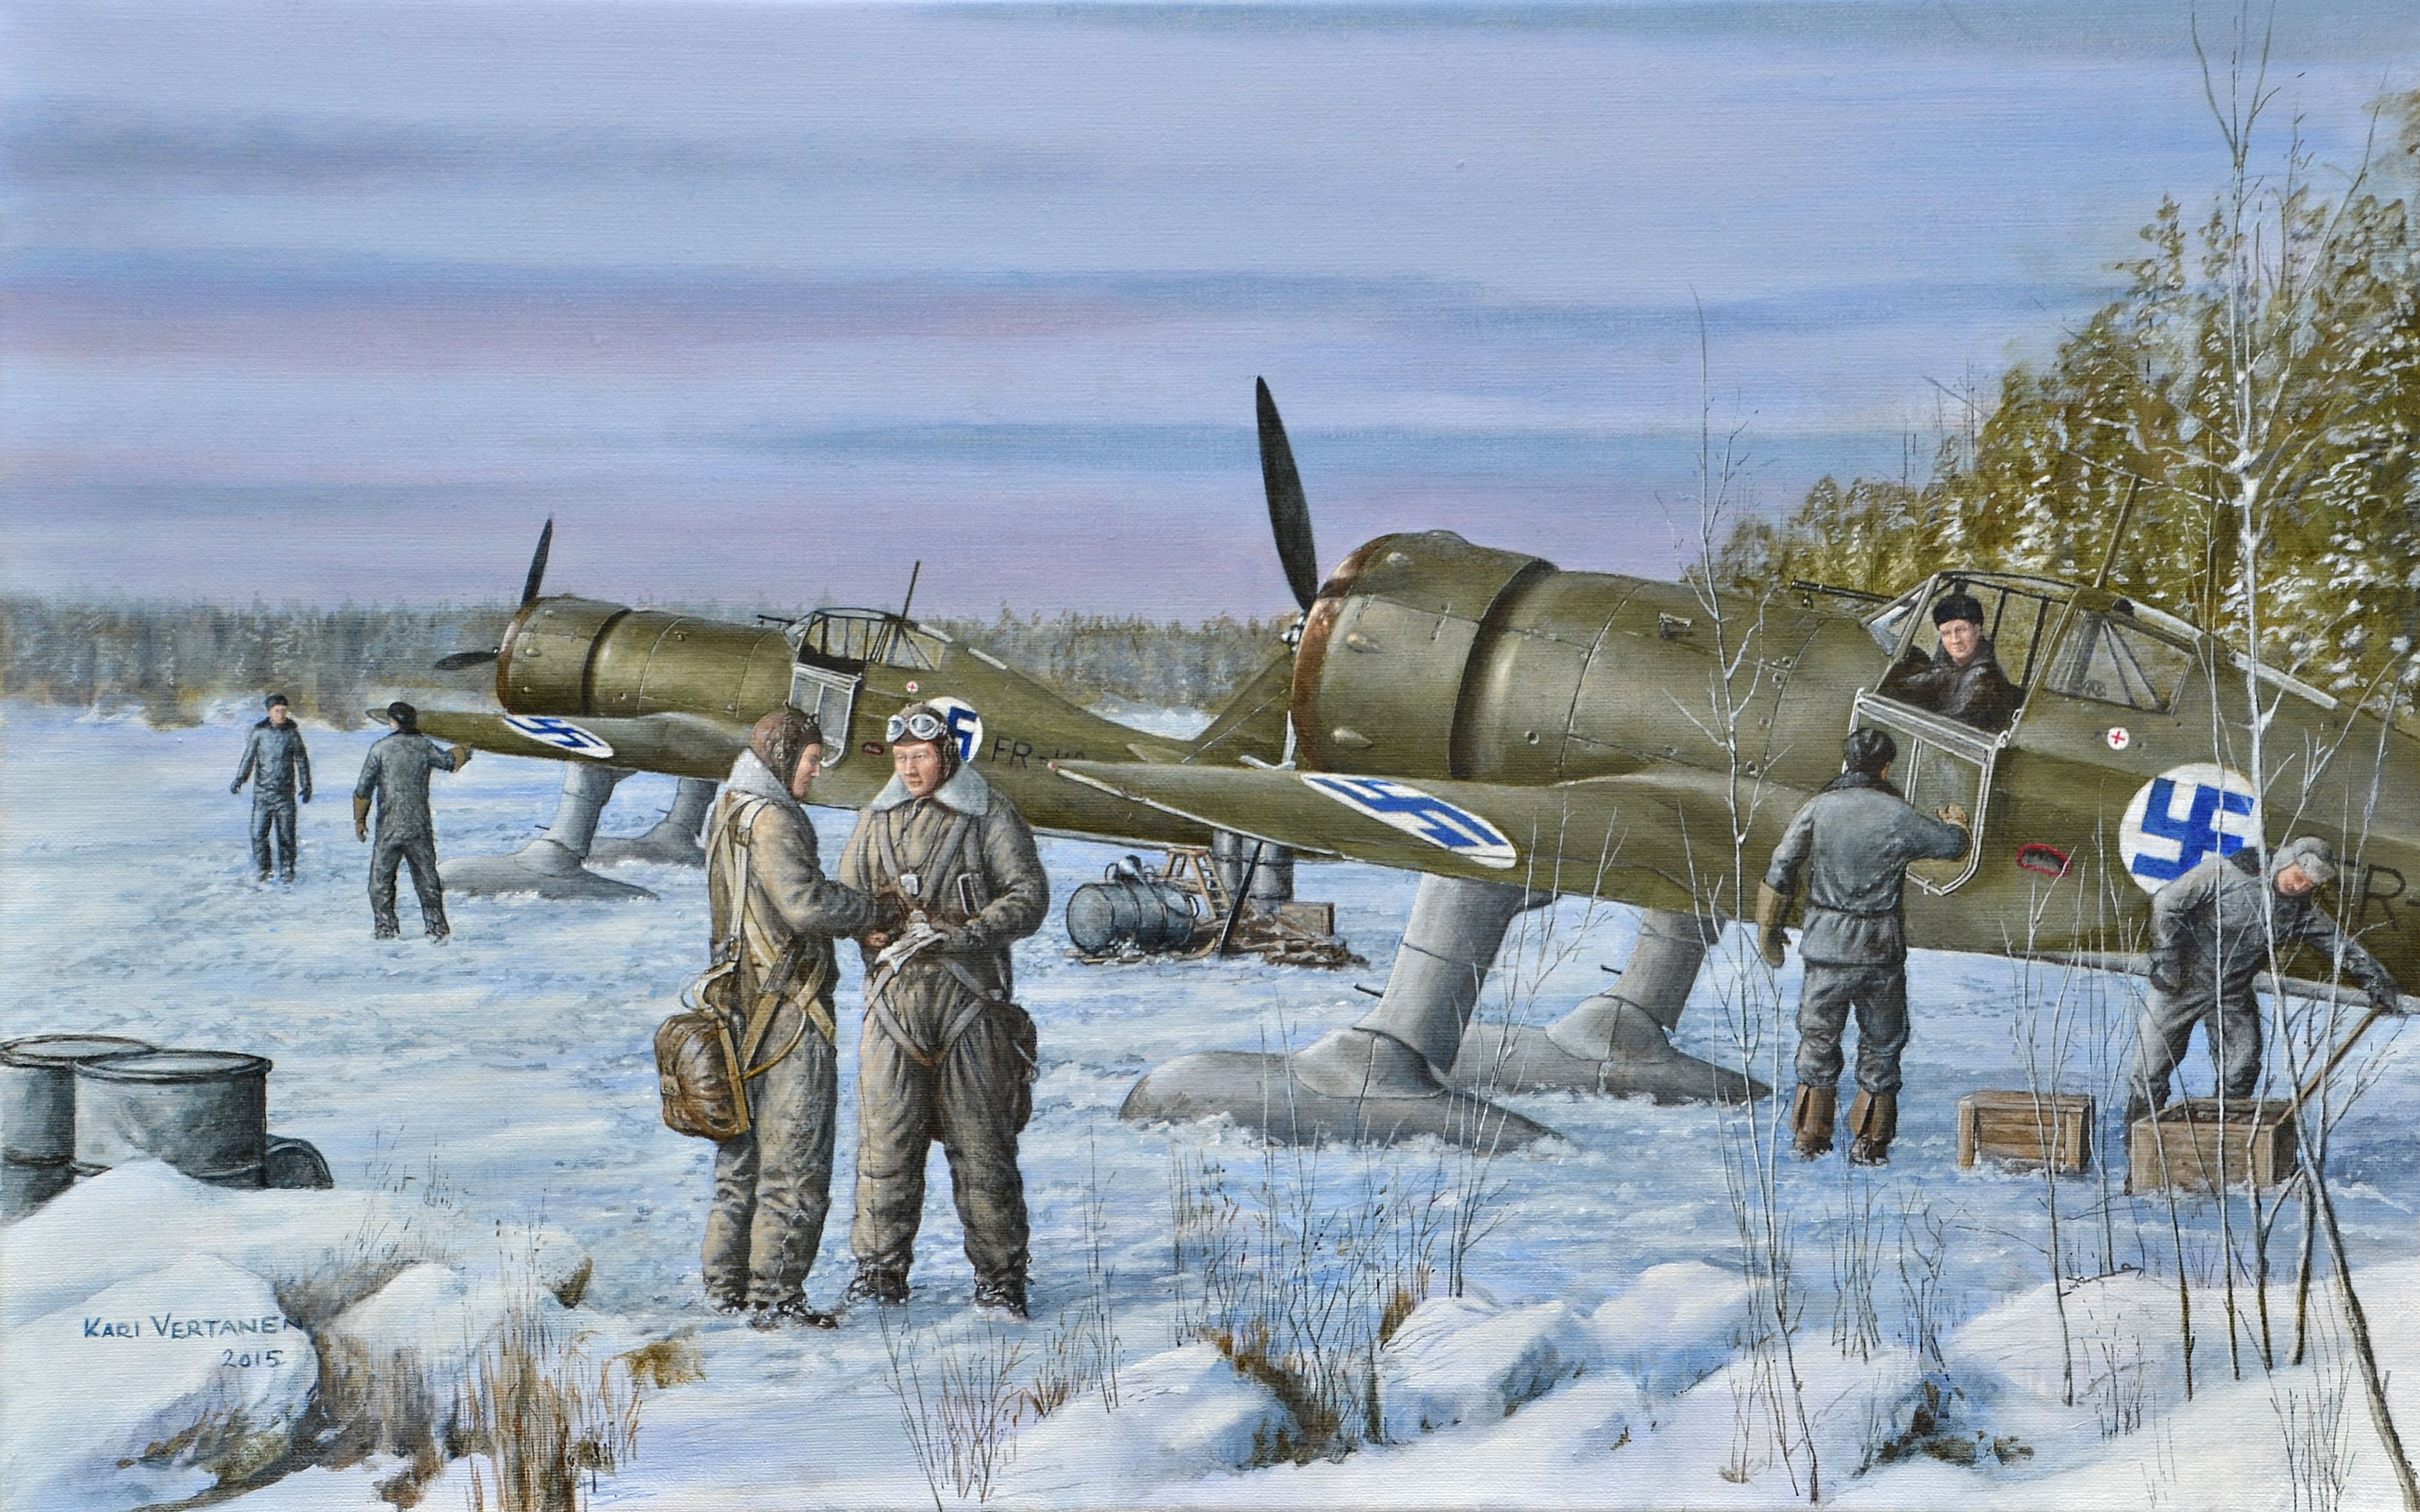 Fokker D21 fighters of No. 24 Squadron preparing for flight during Winter War in March 1940.